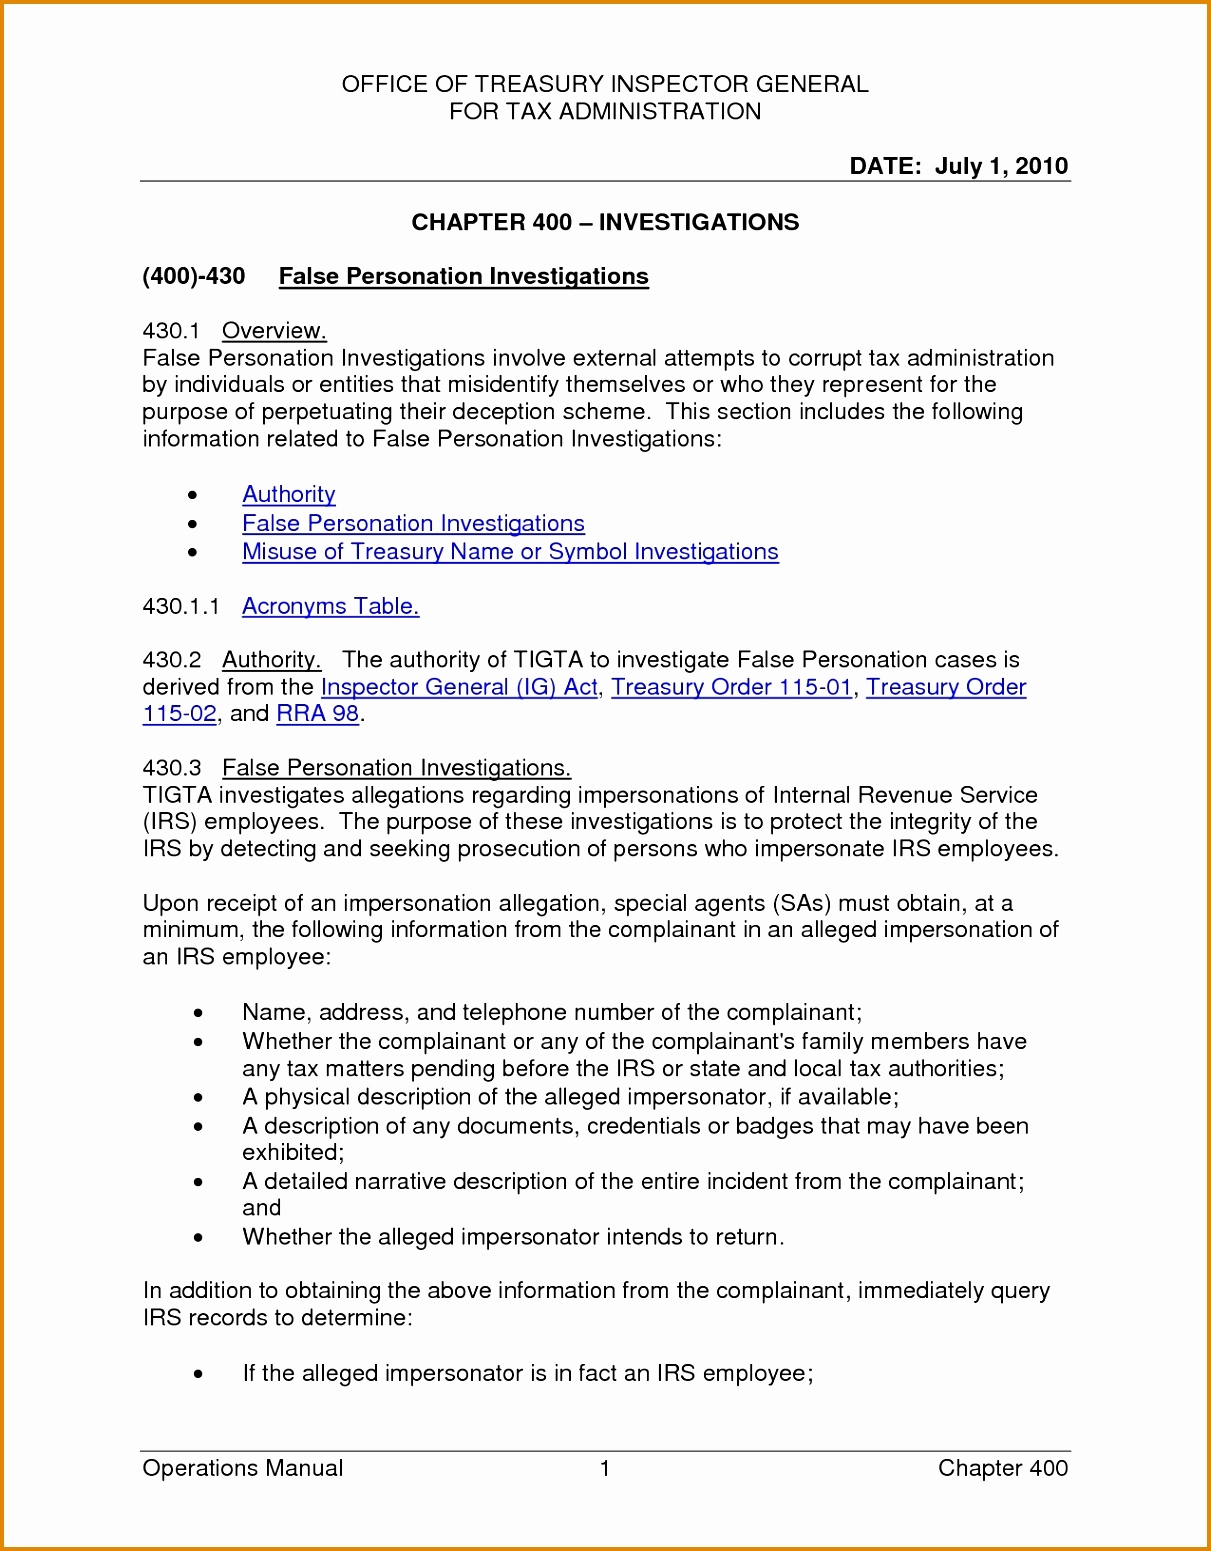 Response to Cease and Desist Letter Template - Cease and Desist Letter Template Lovely Cease and Desist Template